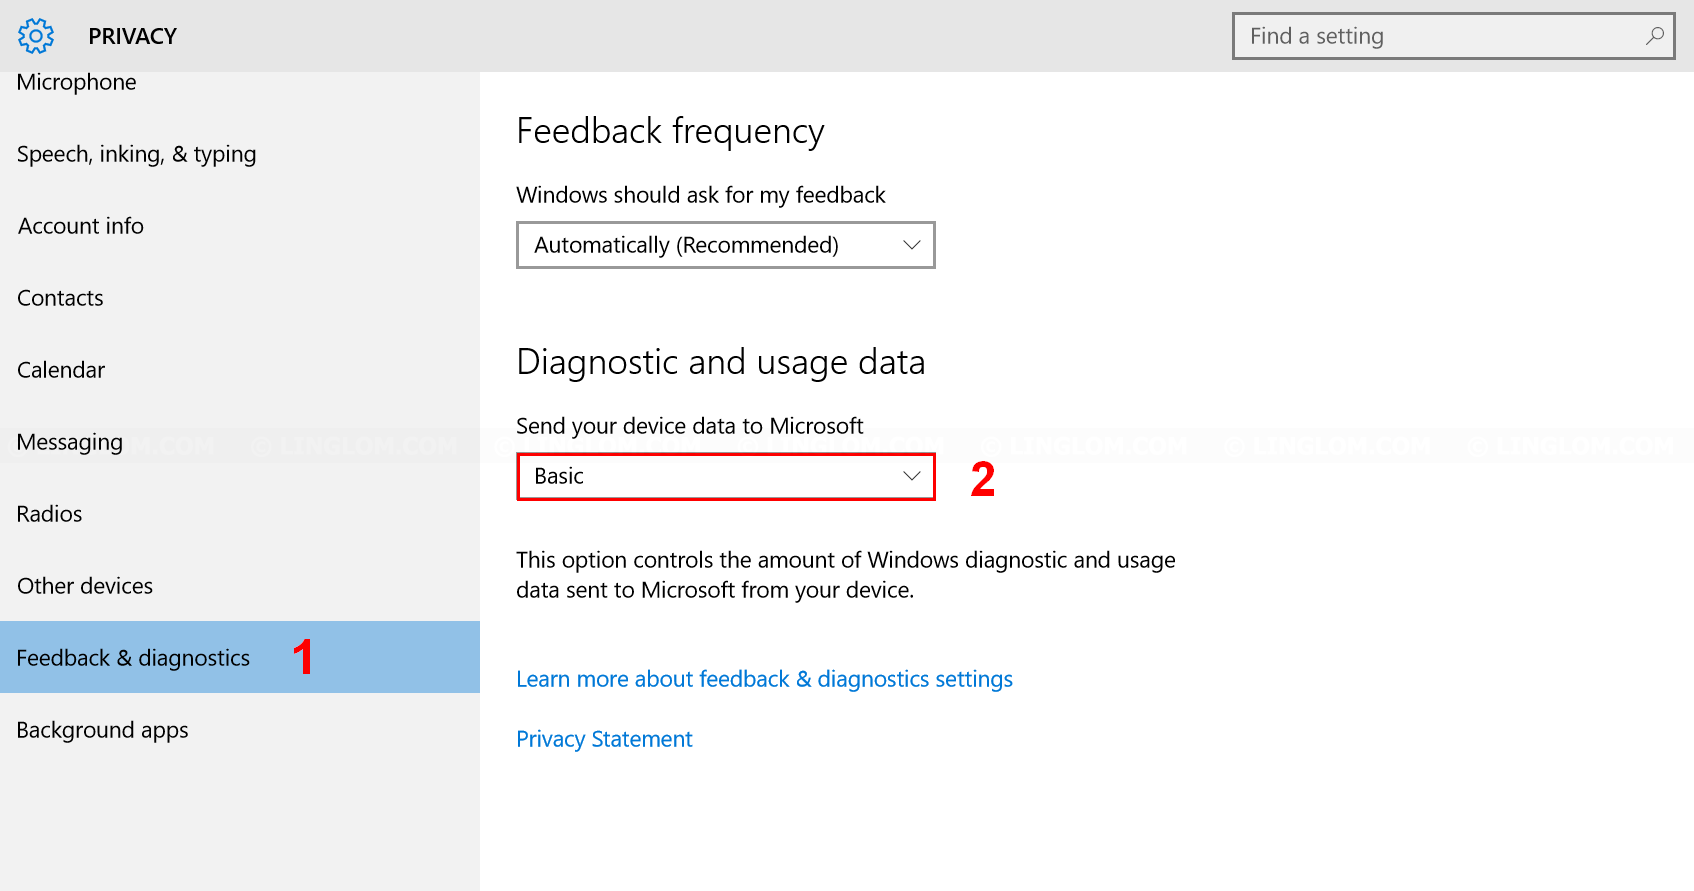 Limit diagnostic and usage data sent to Microsoft